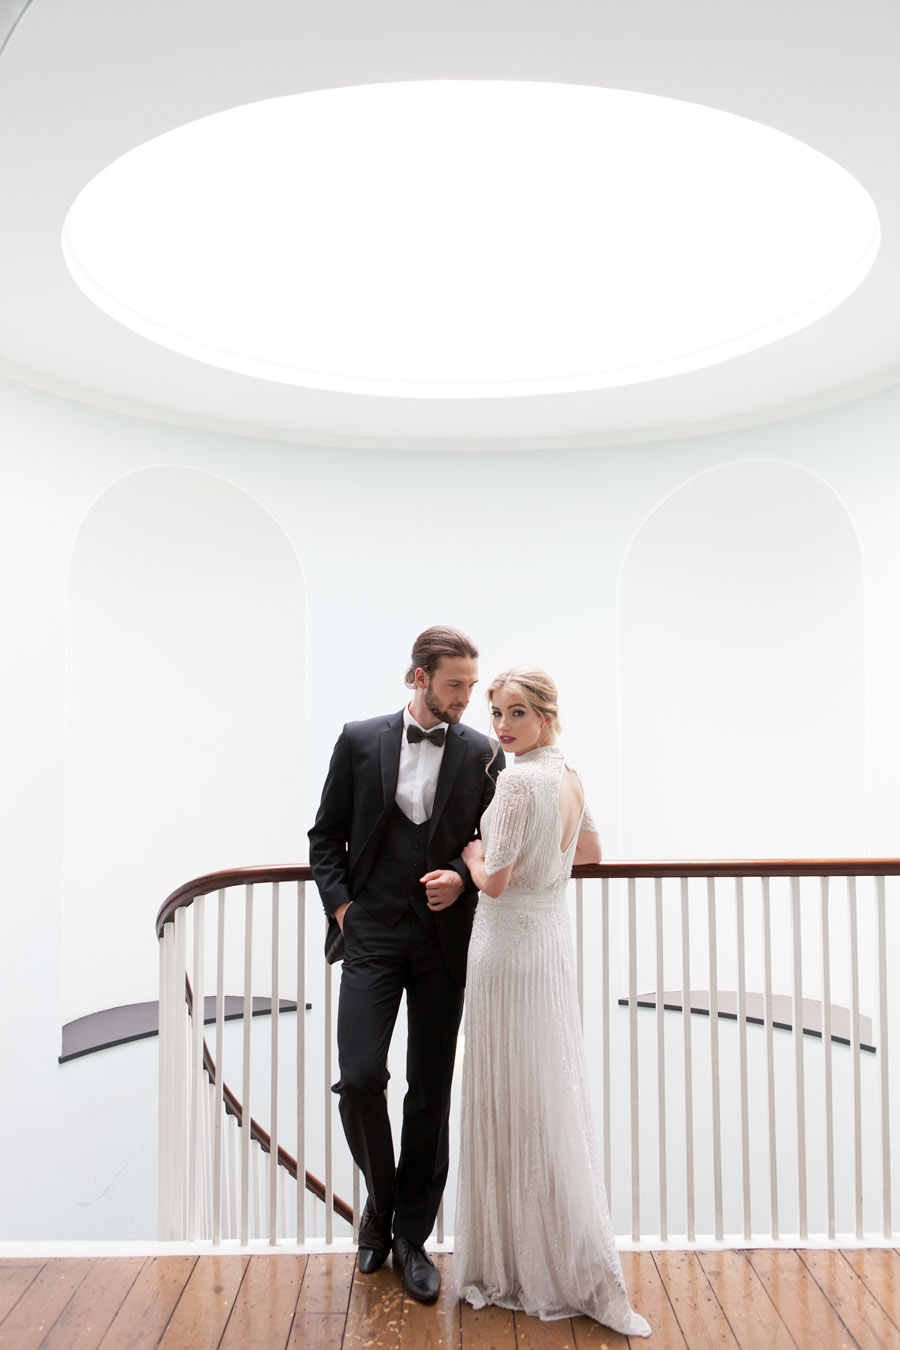 Elegant and timeless wedding look for 2019 brides and grooms, image credit Amanda Karen Photography (33)